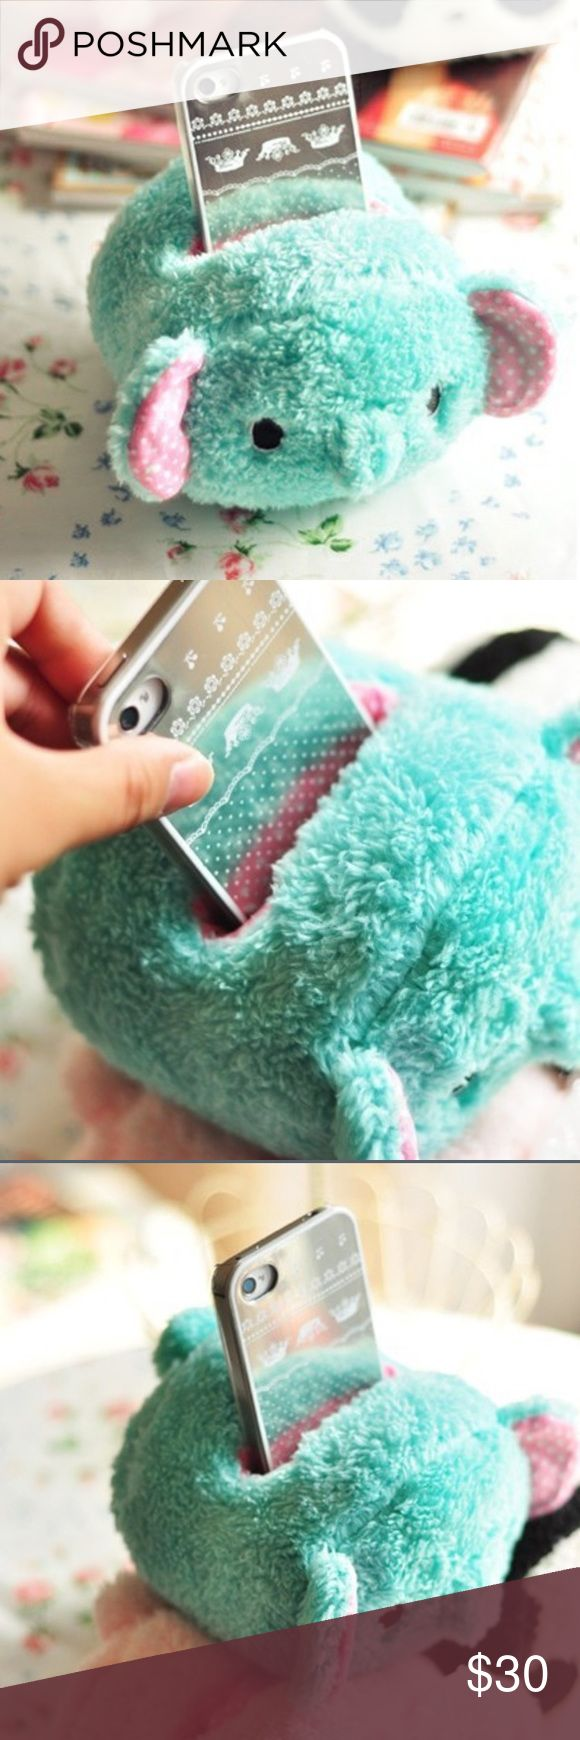 "Cute 🐘 Elephant Plush Cell Phone Holder Super Cute 🐘 Elephant Plush Cell Phone Holder & Stand. Cute design, soft & fluffy, and protects your phone! Put on table, bed, or any other place as decoration. Makes a perfect gift! 100% Brand New & Good Quality. BUNDLE & SAVE!  Approx. Size: 12*11.5*8.5cm/ 4.7""*4.5""*3.3""  Fits Phone Size: Phone width max to 7cm, most of latest phones are available, such as: Samsung S4, iPhone 6s, LG Nexus 5, HTC Desire 500, BlackBerry Z30, etc. Accessories"